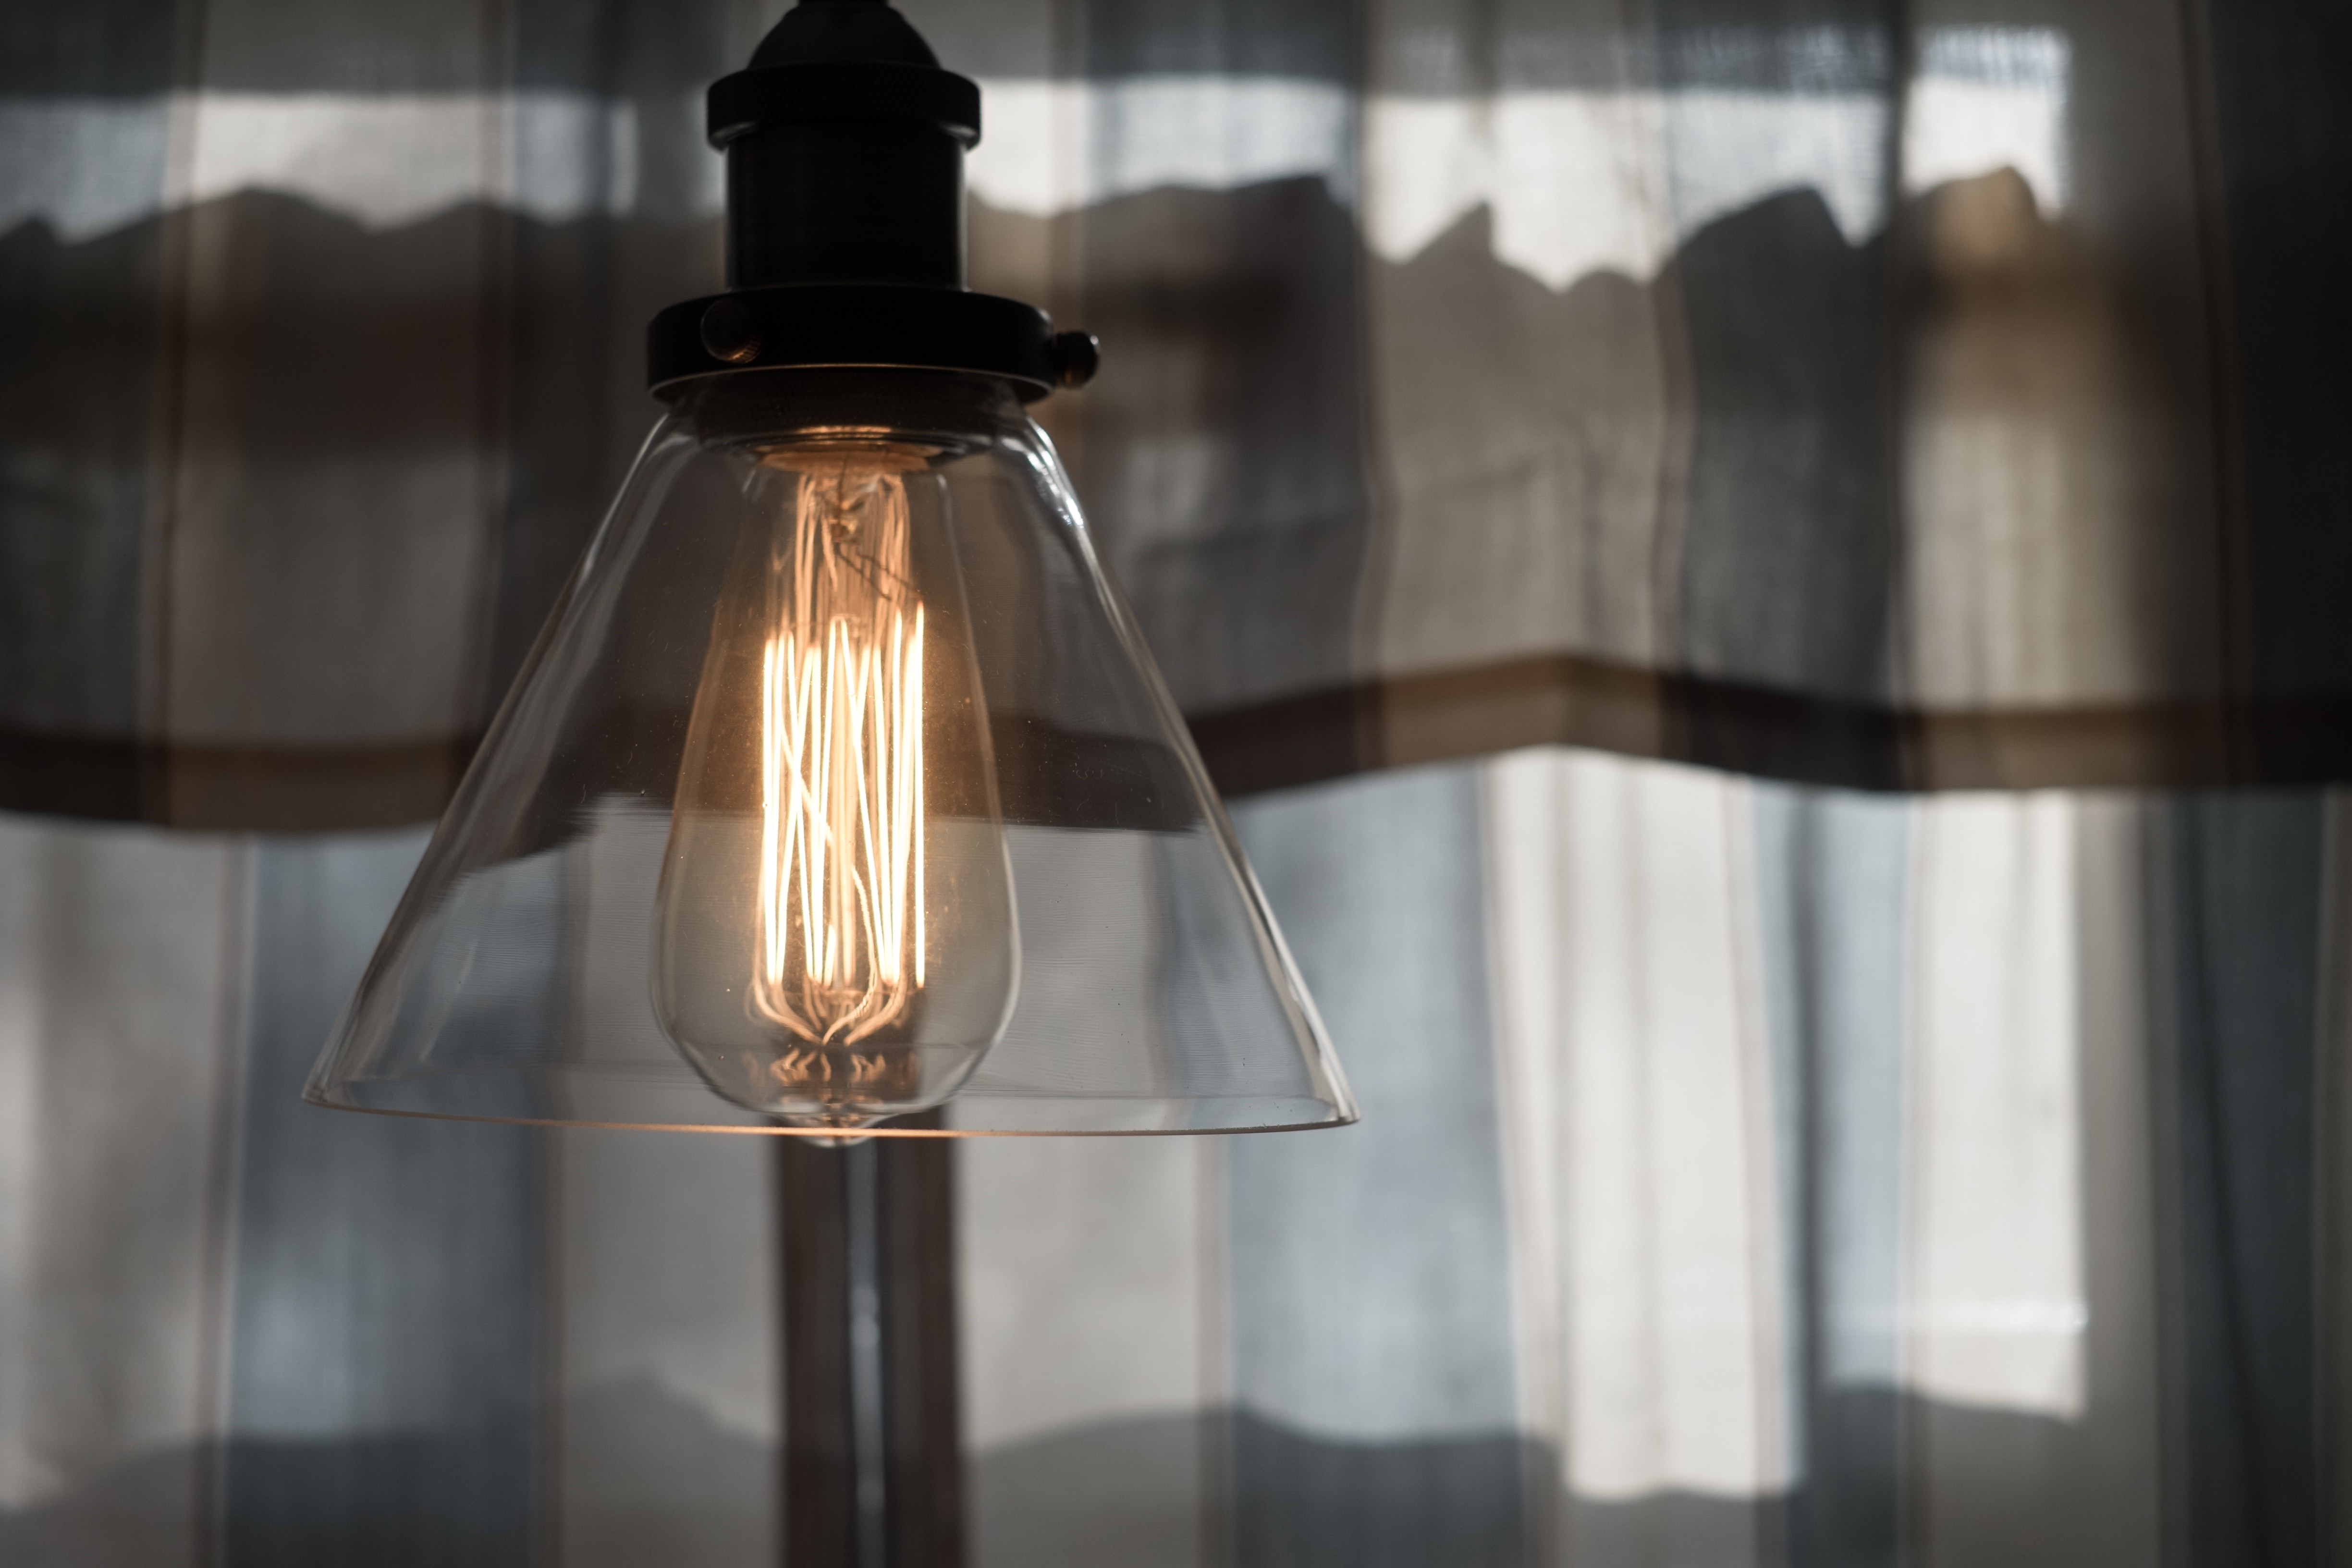 Hanging light in a clear lampshade with light tan curtains in the background